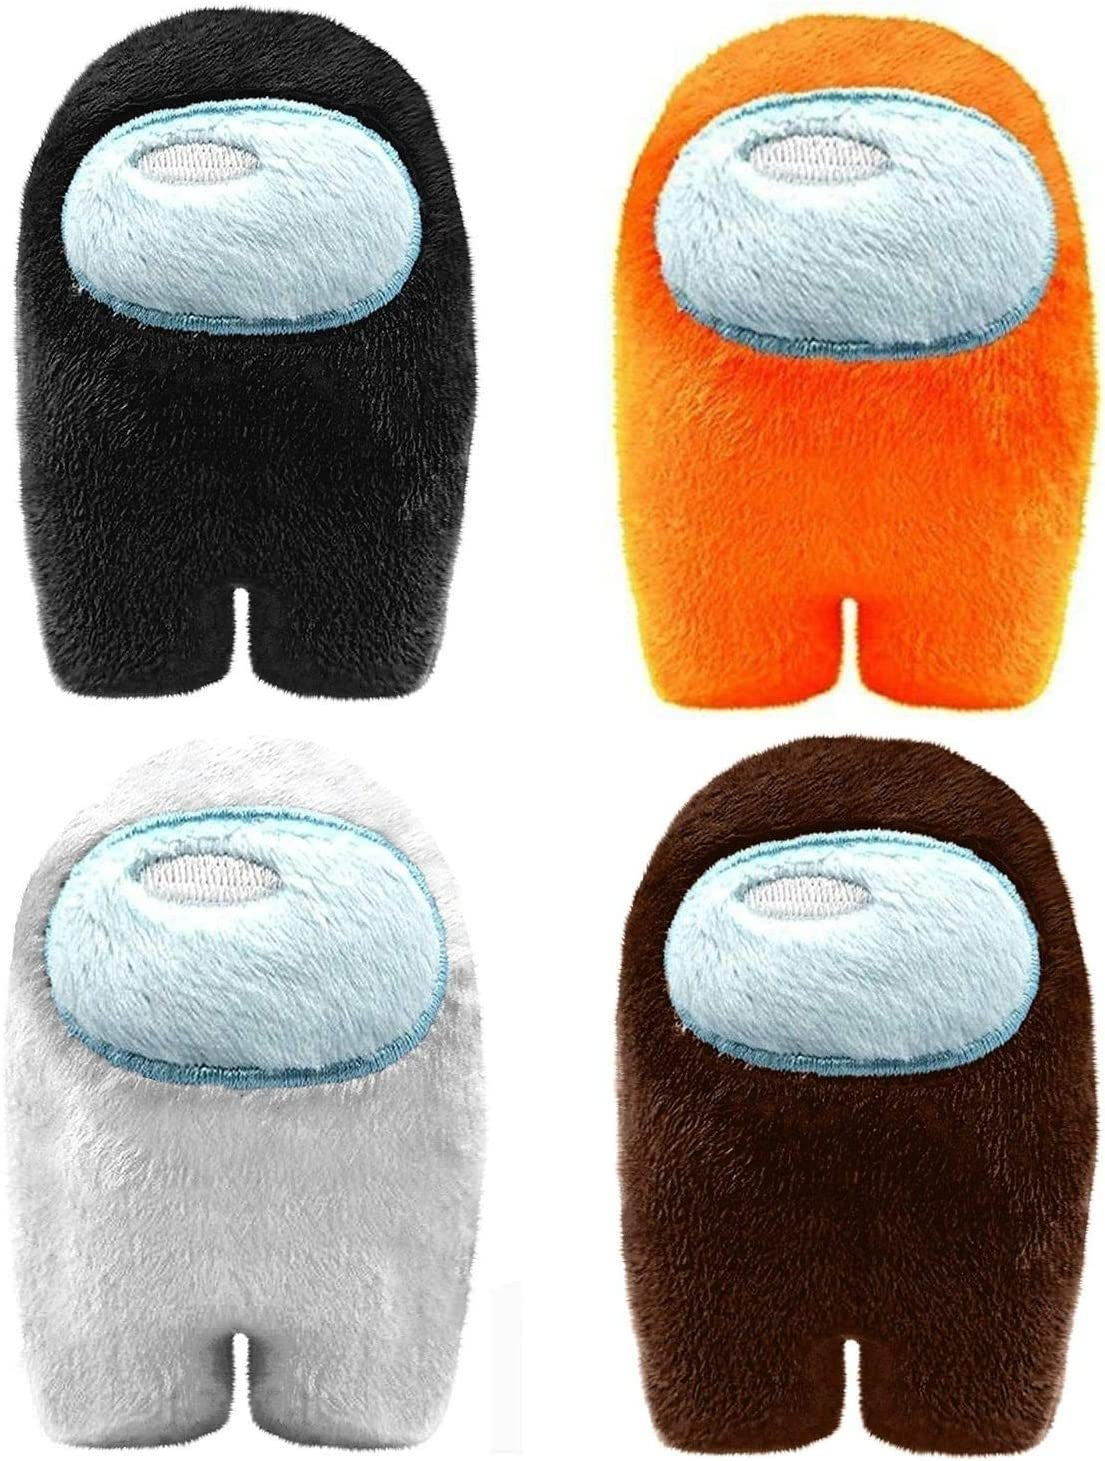 Among Us Game Plush Toys Soft Stuffed Animals Imposter Plush Squeak Plushie Figure 4.3 inch Pack of 4